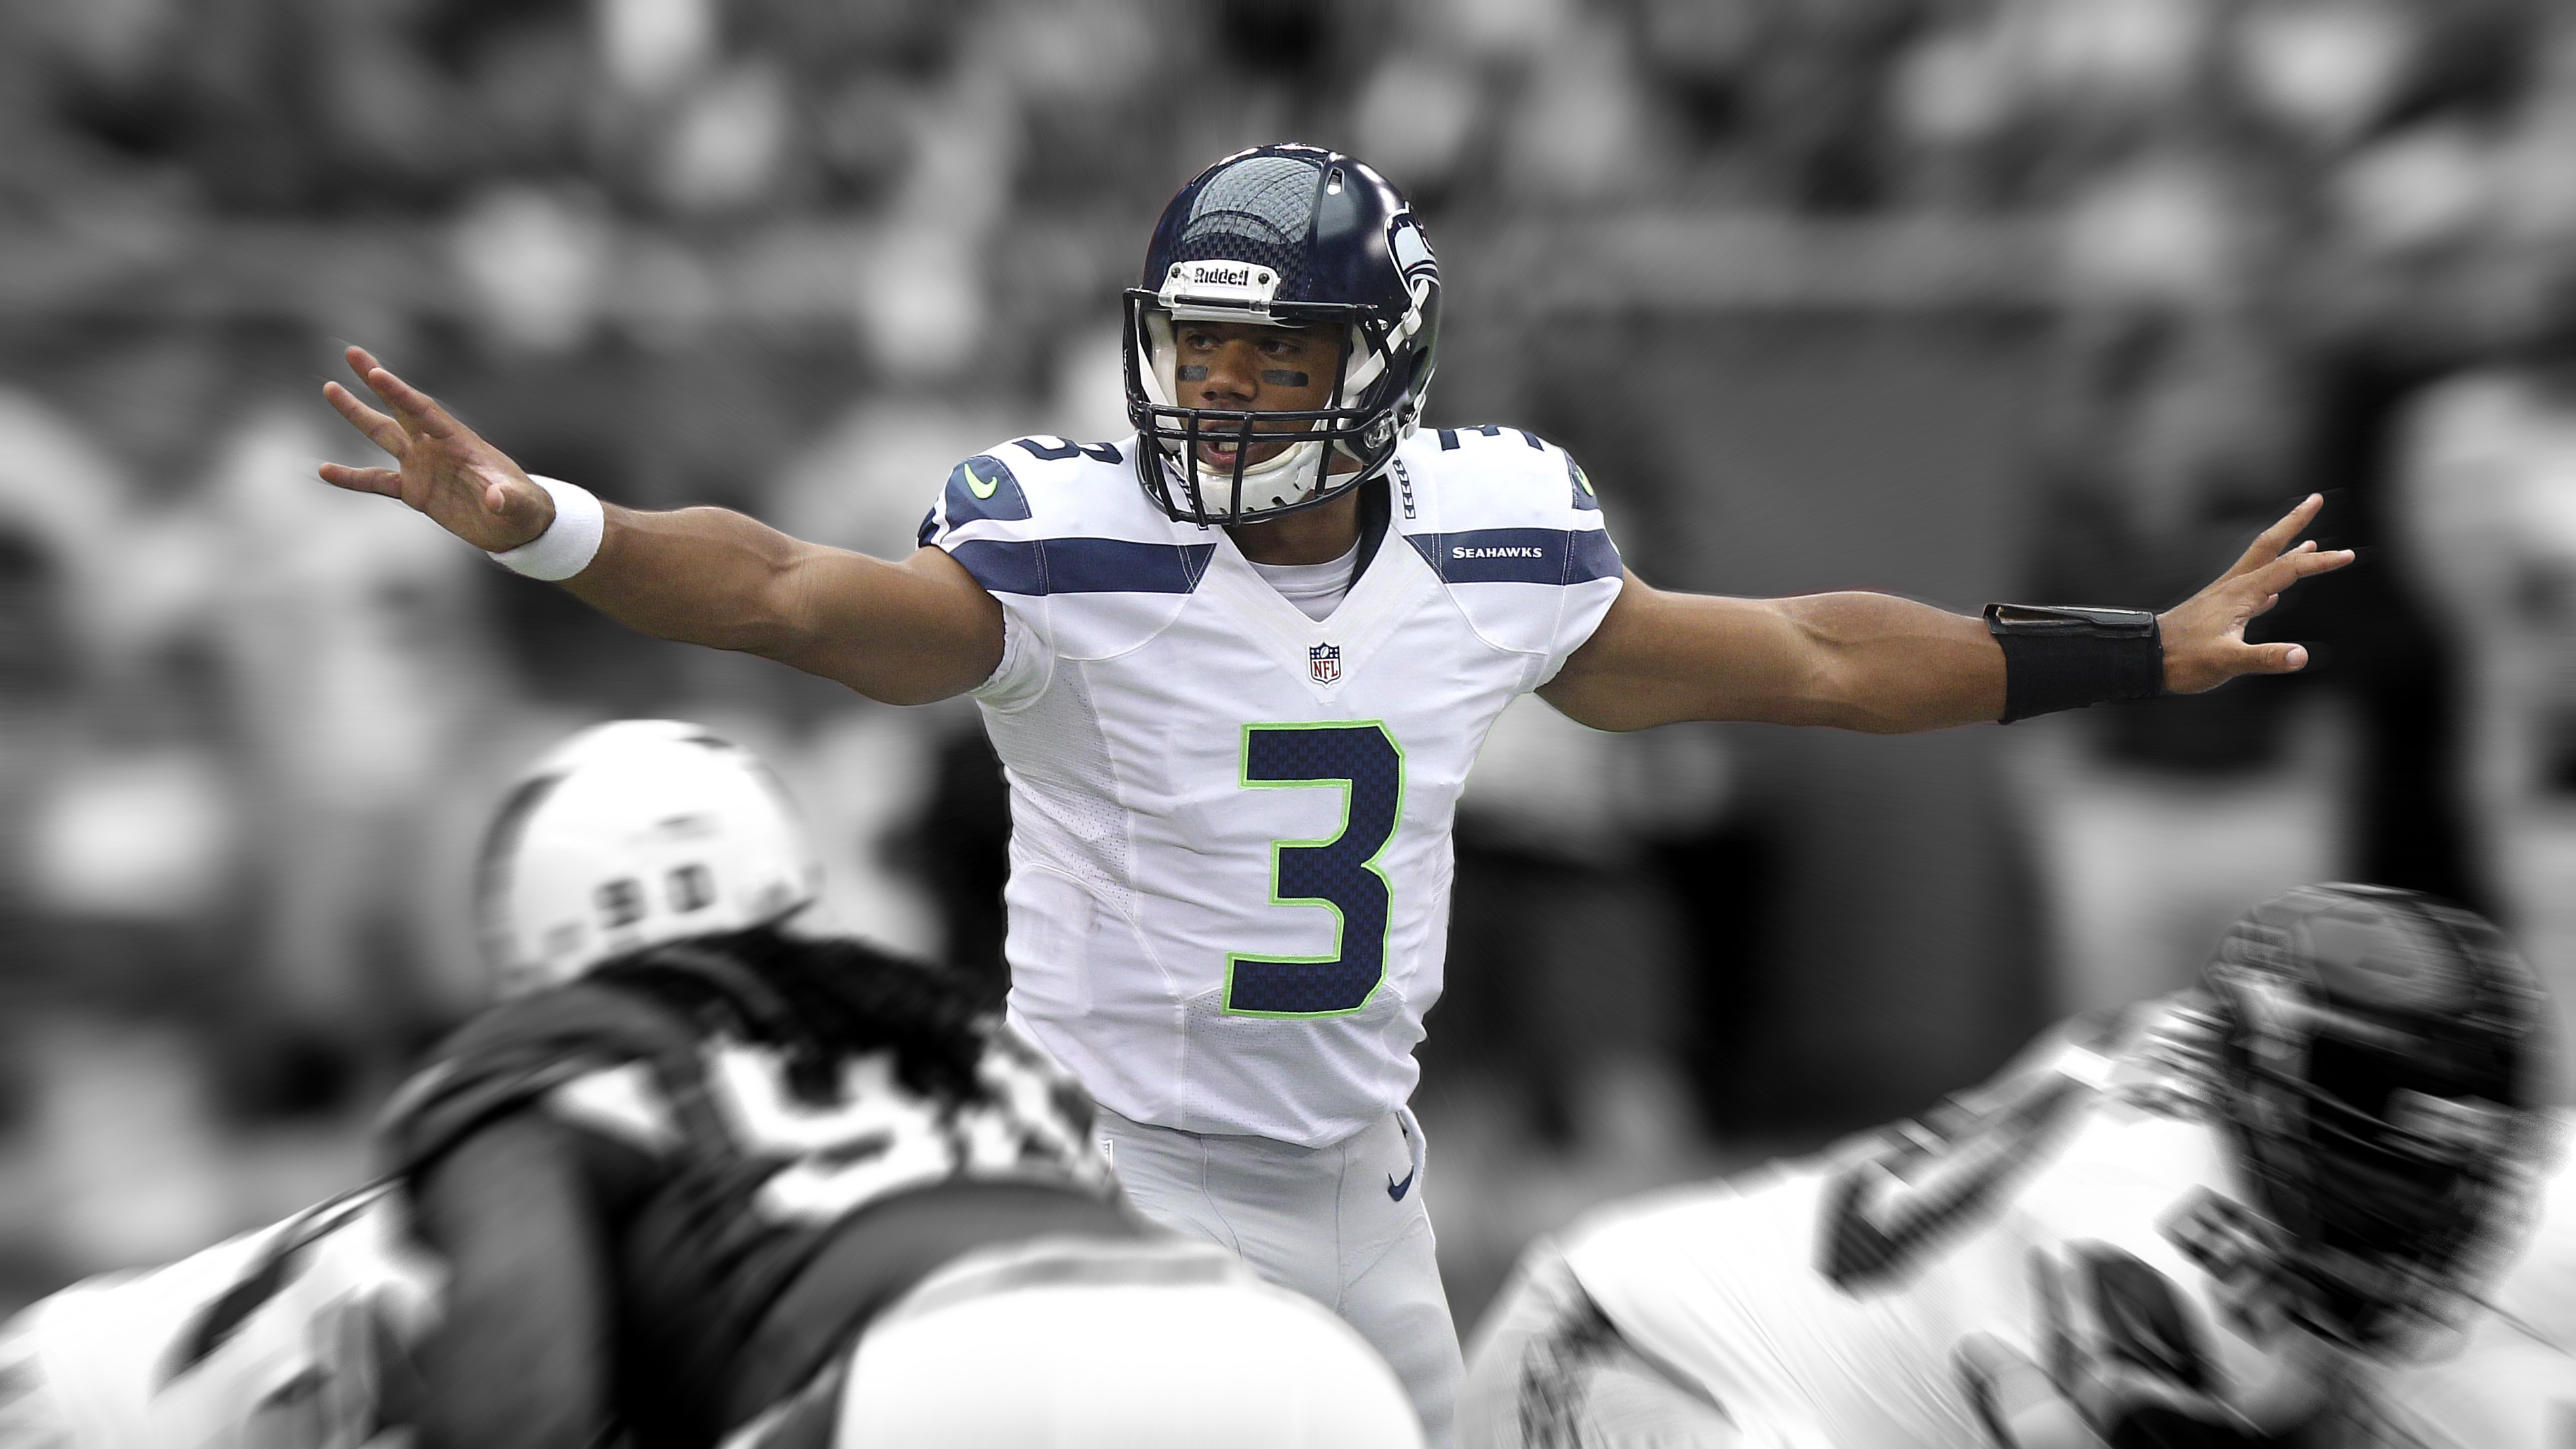 171 Seattle Seahawks Wallpapers | Seattle Seahawks Backgrounds Page 4